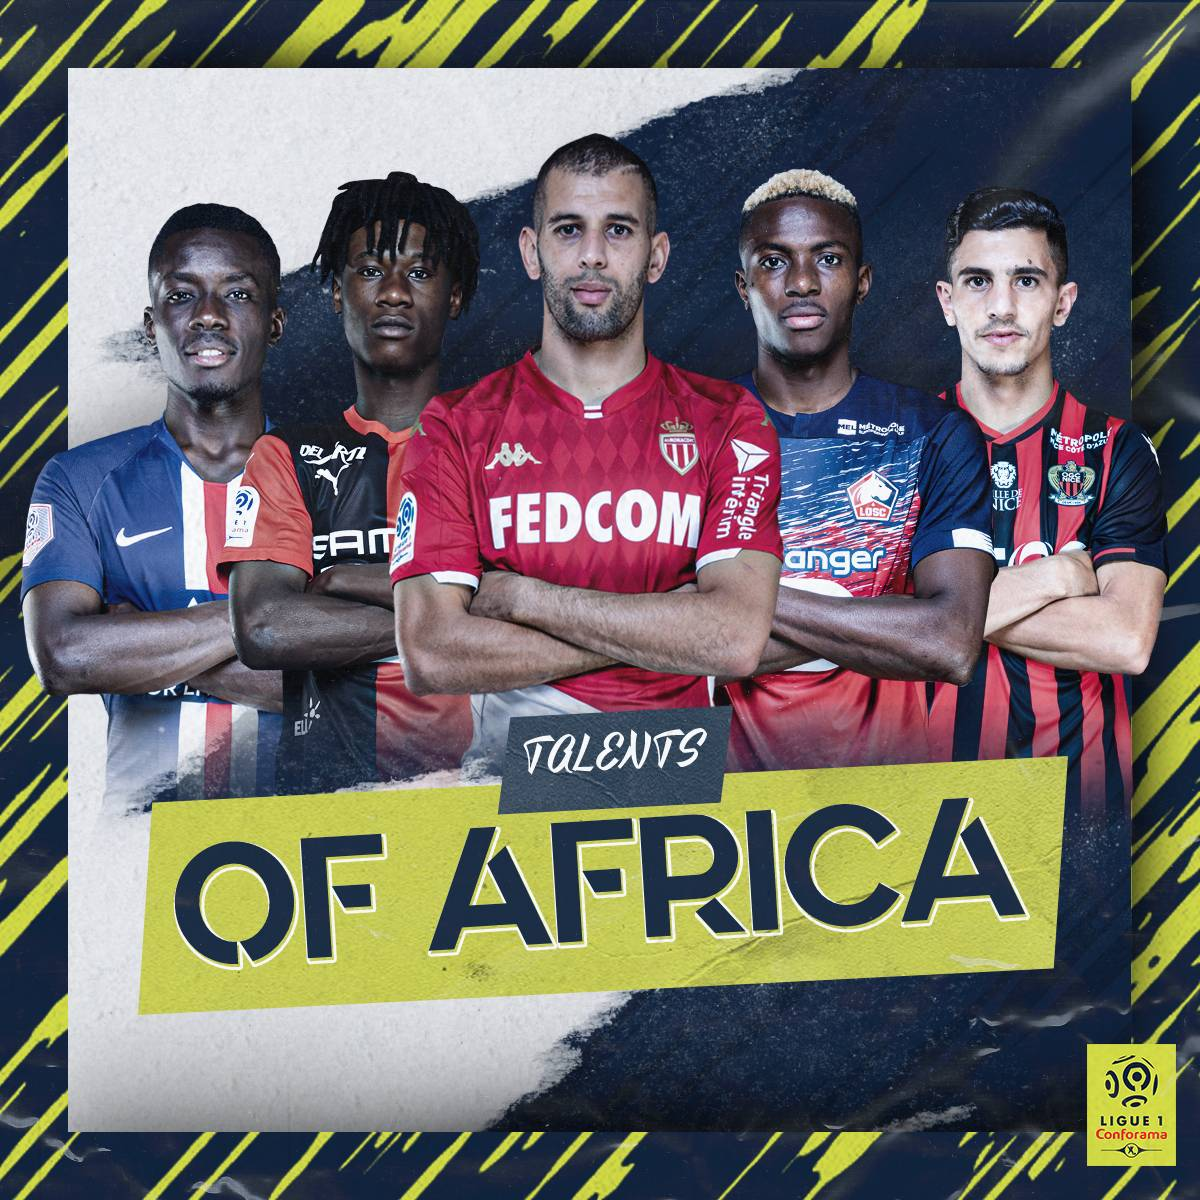 We also celebrate the African s of today's Ligue 1 Conforama!   @IGanaGueye   @ecama10   @slimaniislam   @victorosimhen9   @YoucefAttal<br>http://pic.twitter.com/uyxWu7YQu5